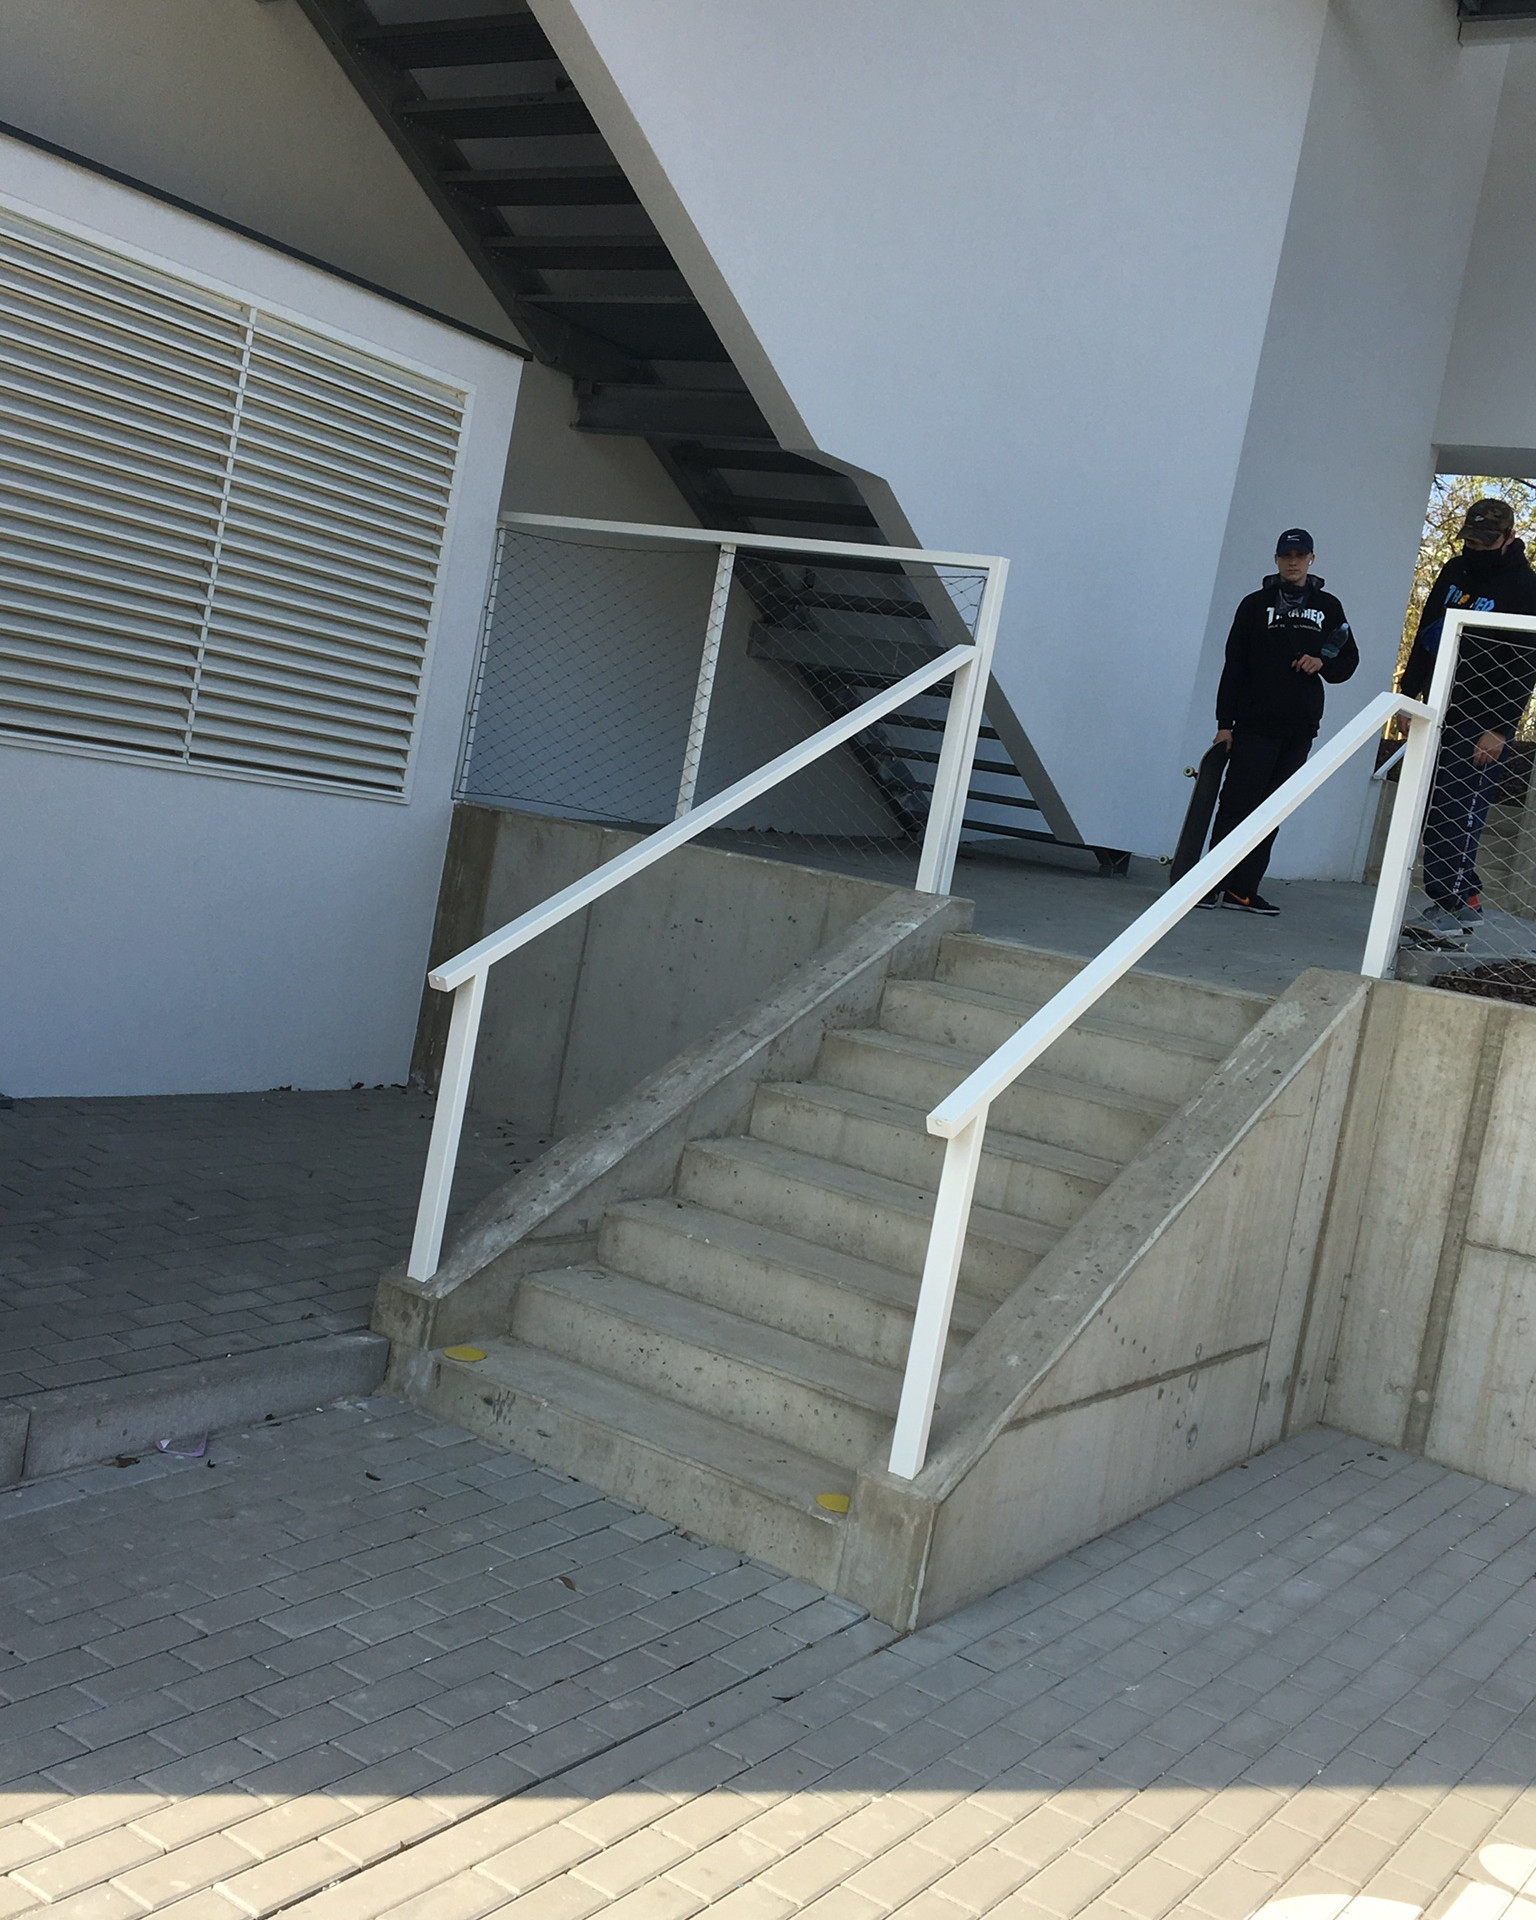 Rail 8 stairs​  ​ - Bus Station: Pelc Tyrolka - Povltavská street - Behind university